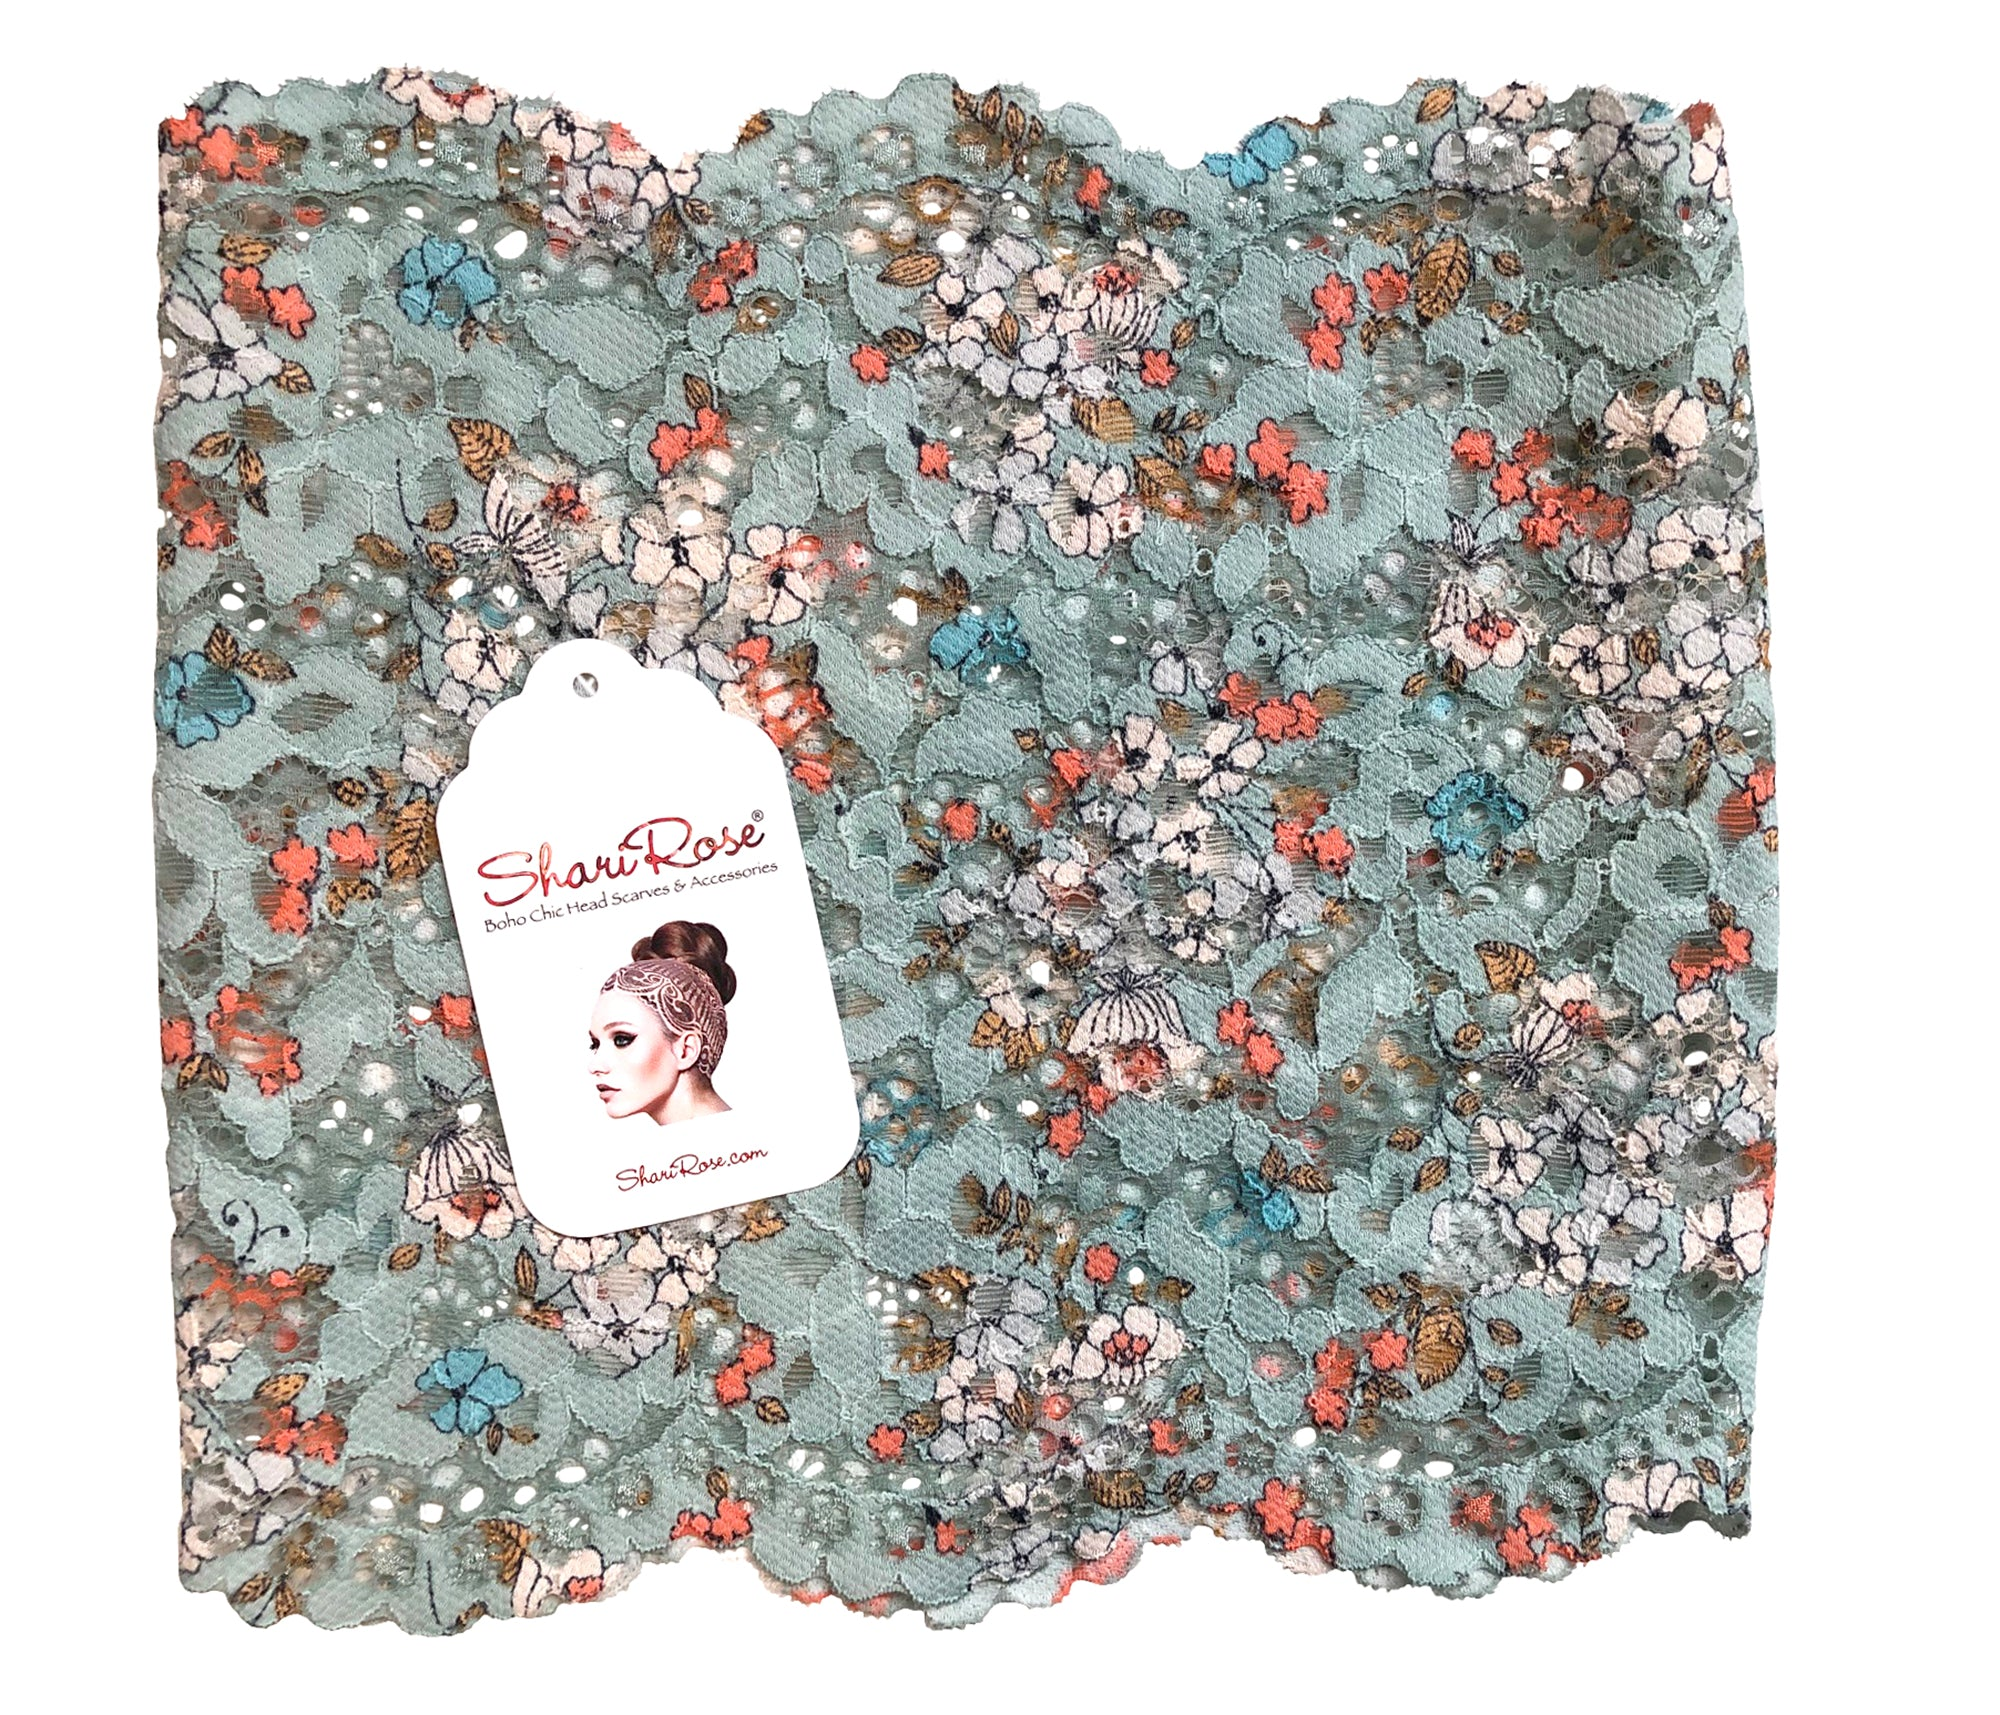 Stunning hippie chic teal floral lace headband